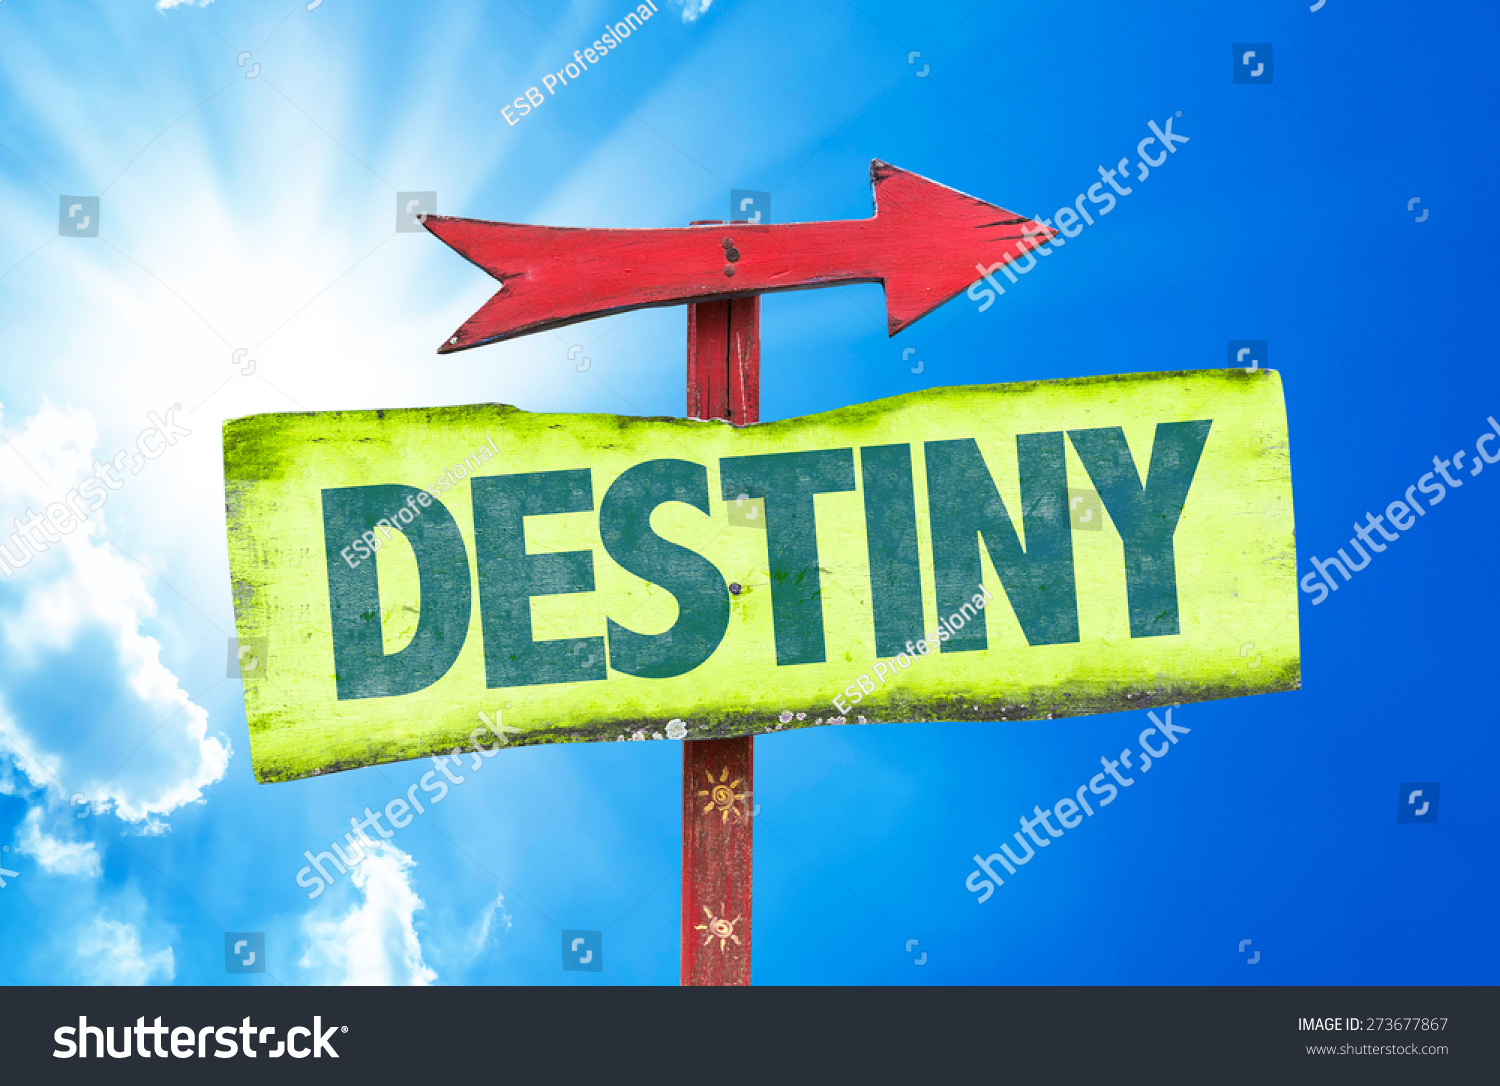 Destiny sign with sky background 273677867 shutterstock for The apartment design your destiny episode 1